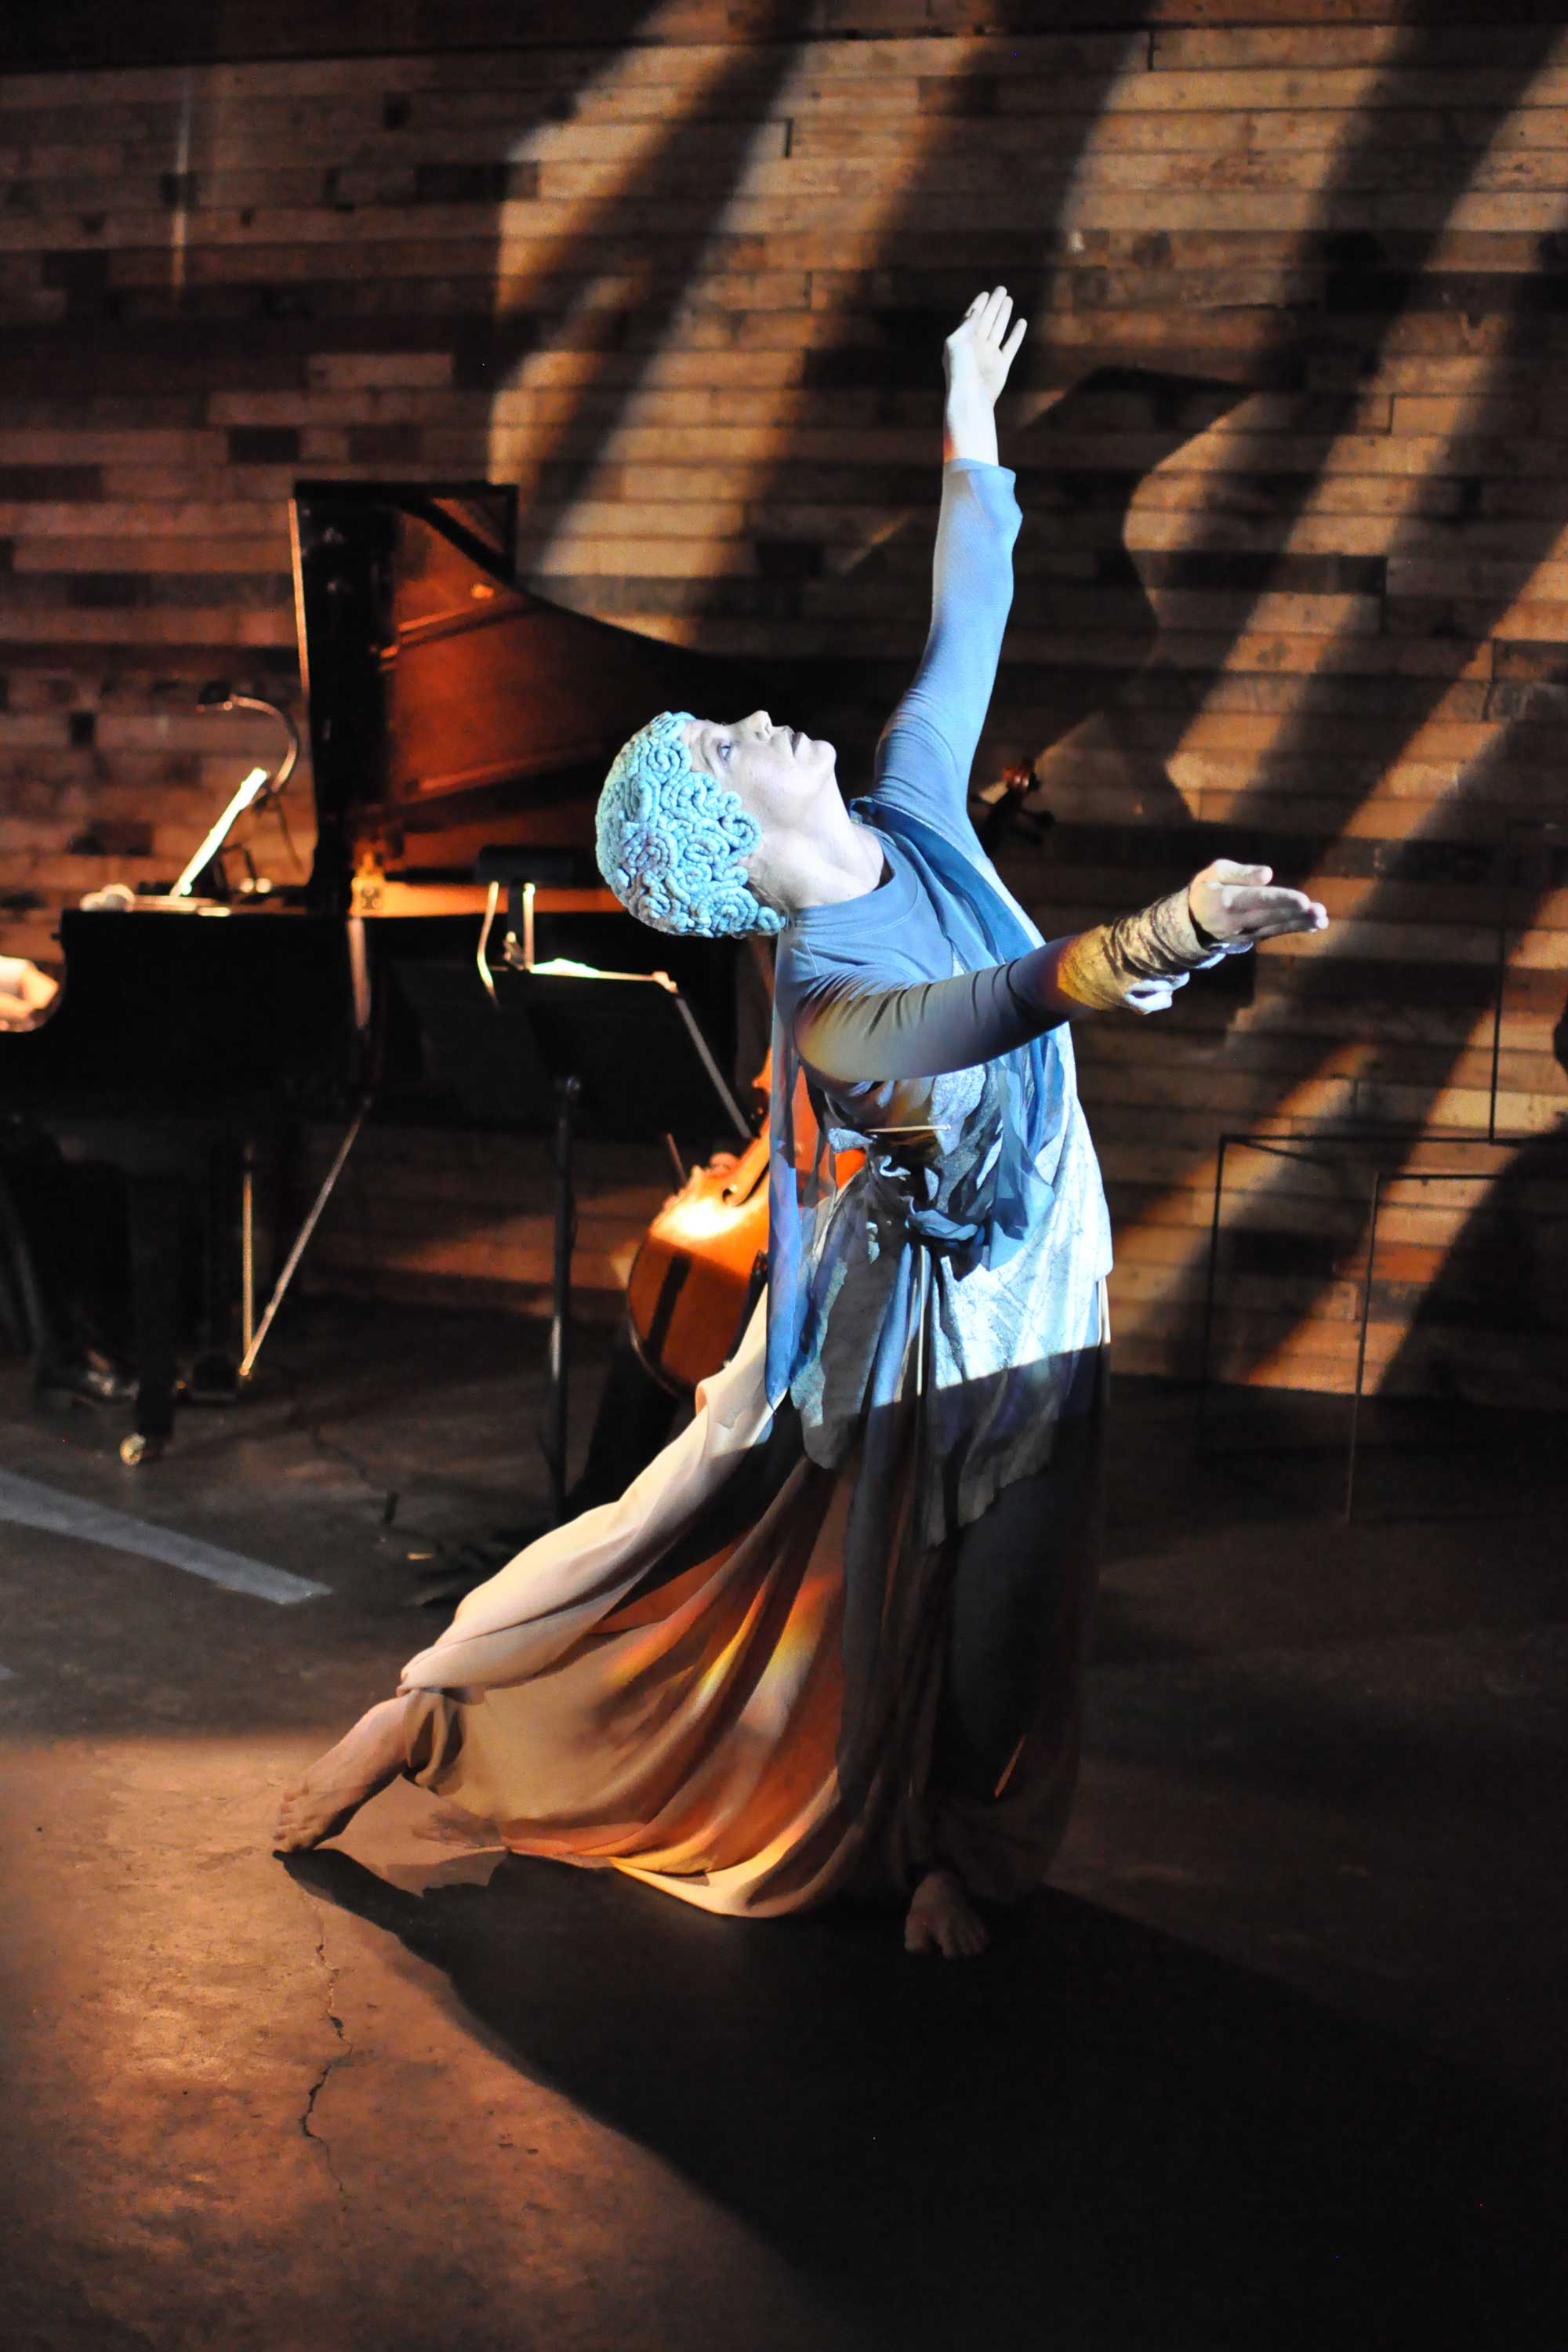 Selkie. Misha Penton, soprano, concept, libretto, director, producer. Music by Elliot Cole. Meg Brooker, dancer & choreographer. Lighting by Megan M. Reilly.Sets, David A. Brown & Michael Crowder.Costumes, Sarah Mosher.